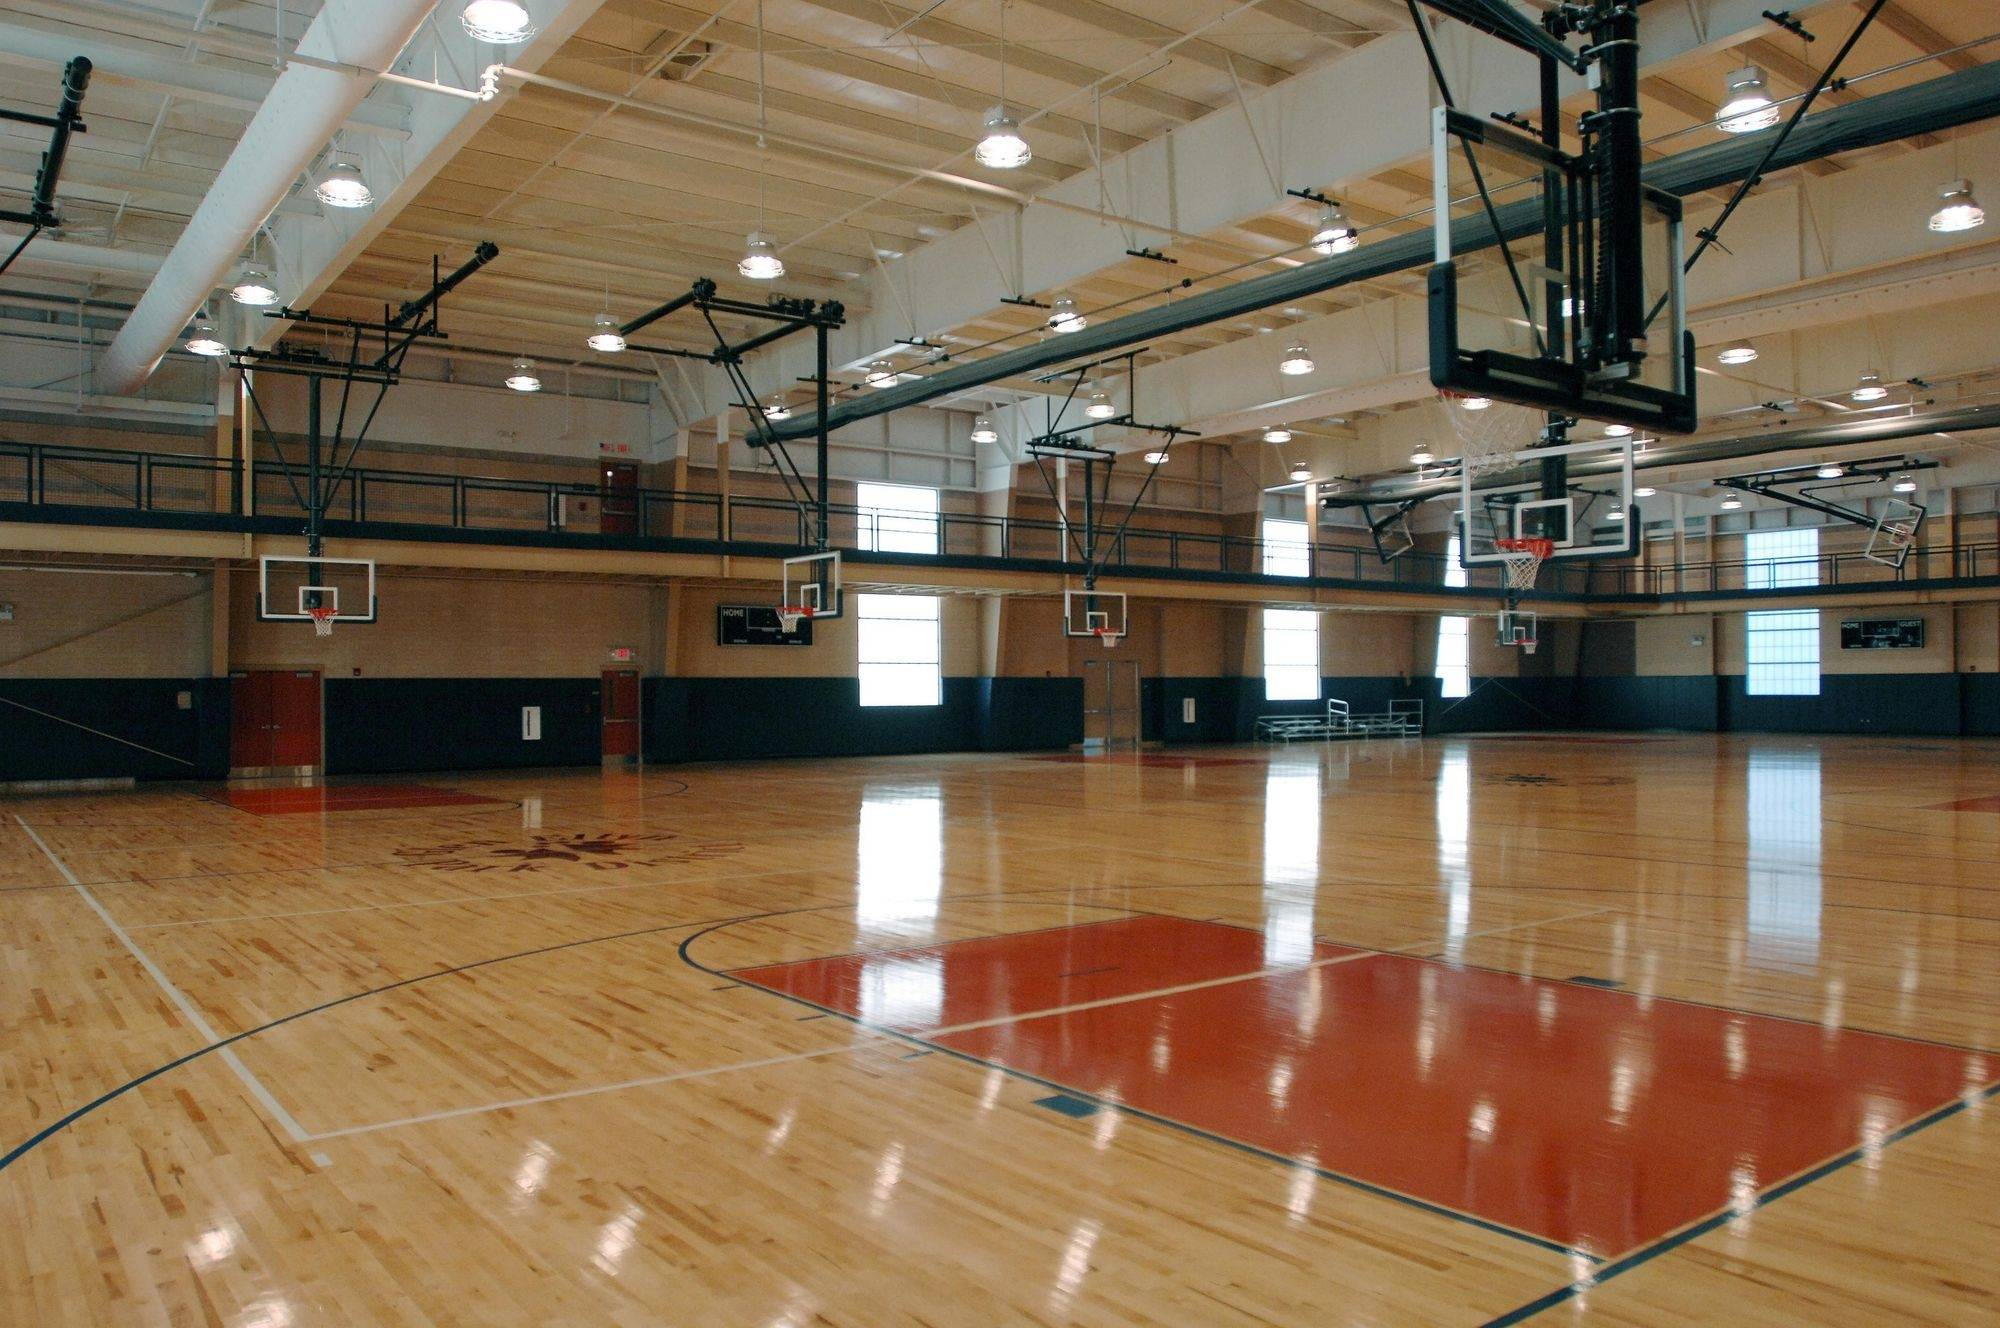 The gym at the Ackerman Sports and Fitness Center in Glen Ellyn on Tuesday. Officials are withholding money from some vendors because of damage caused to the hardwood floors by a leak on the southwest side of the building.